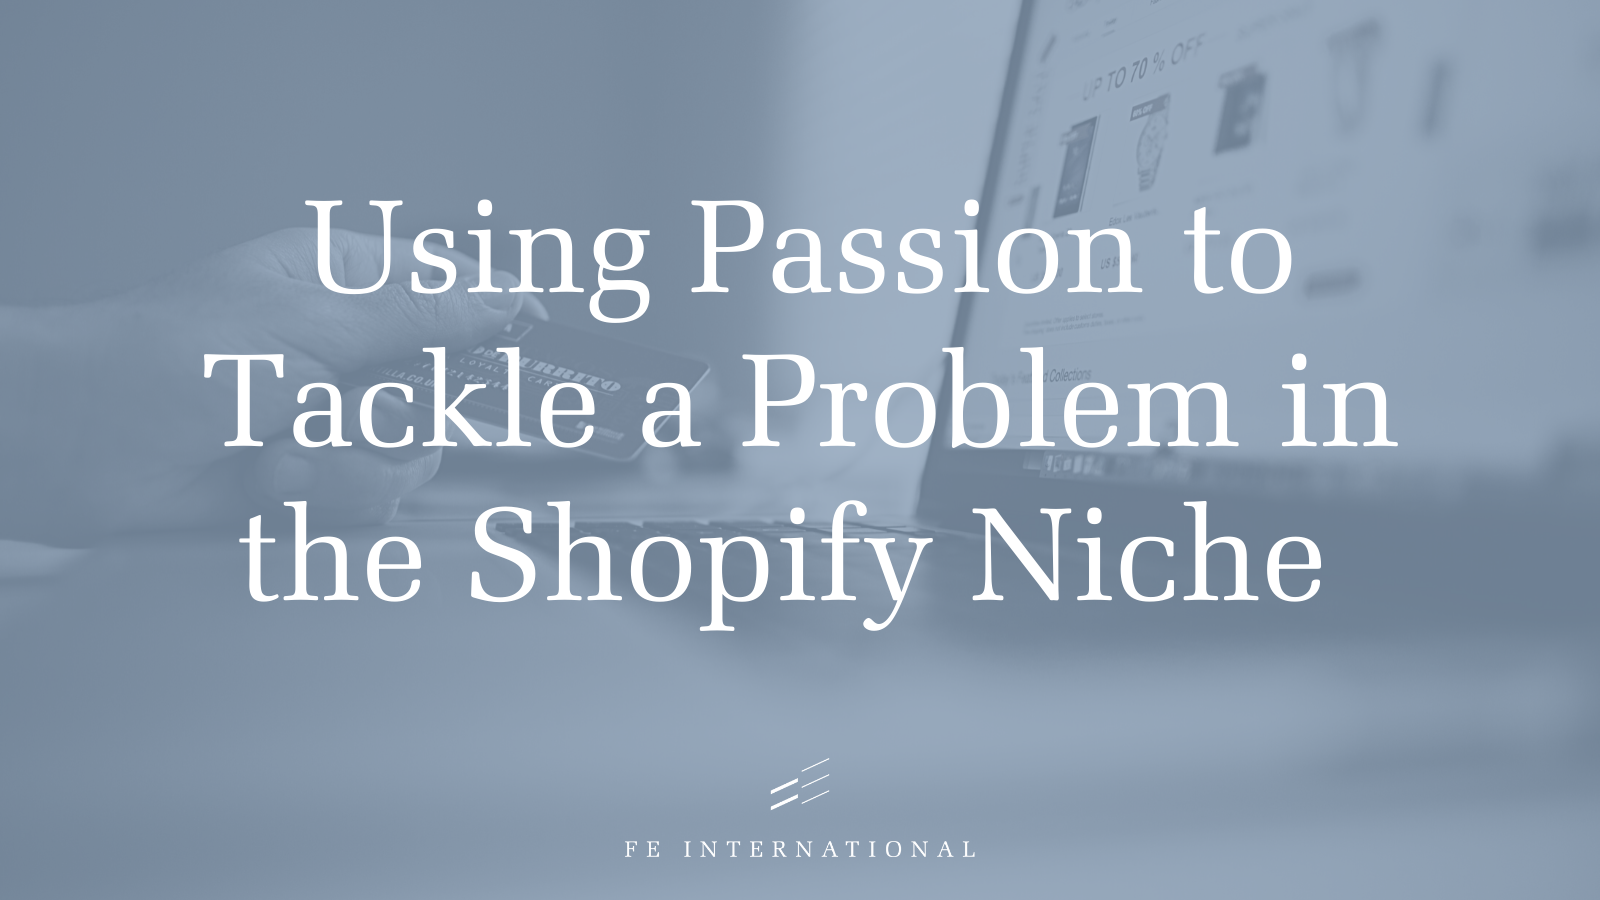 Using Passion to Tackle a Problem in the Shopify Niche